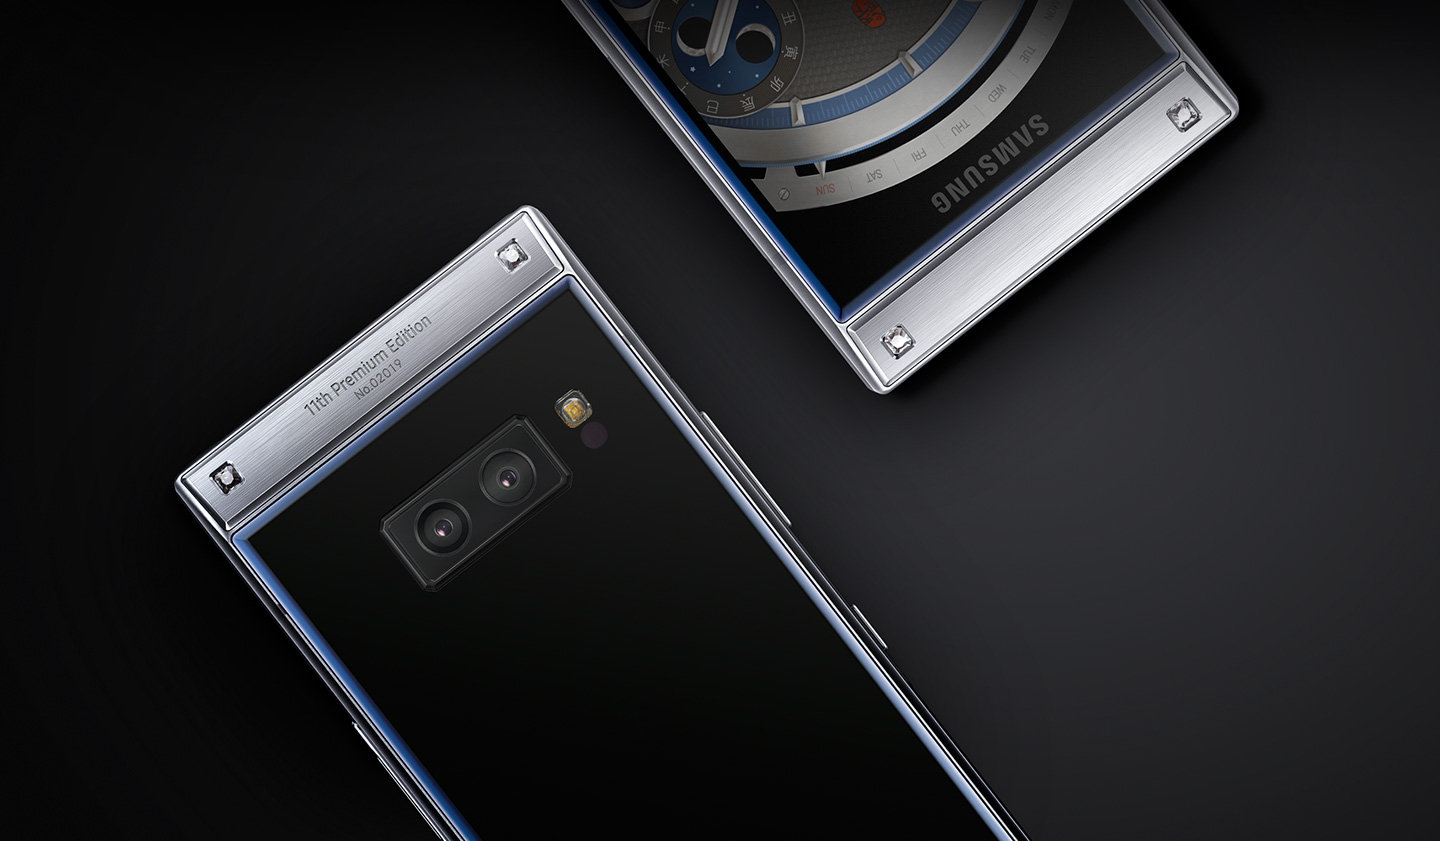 Samsung W2019 announced with dual screens & dual rear cameras 6